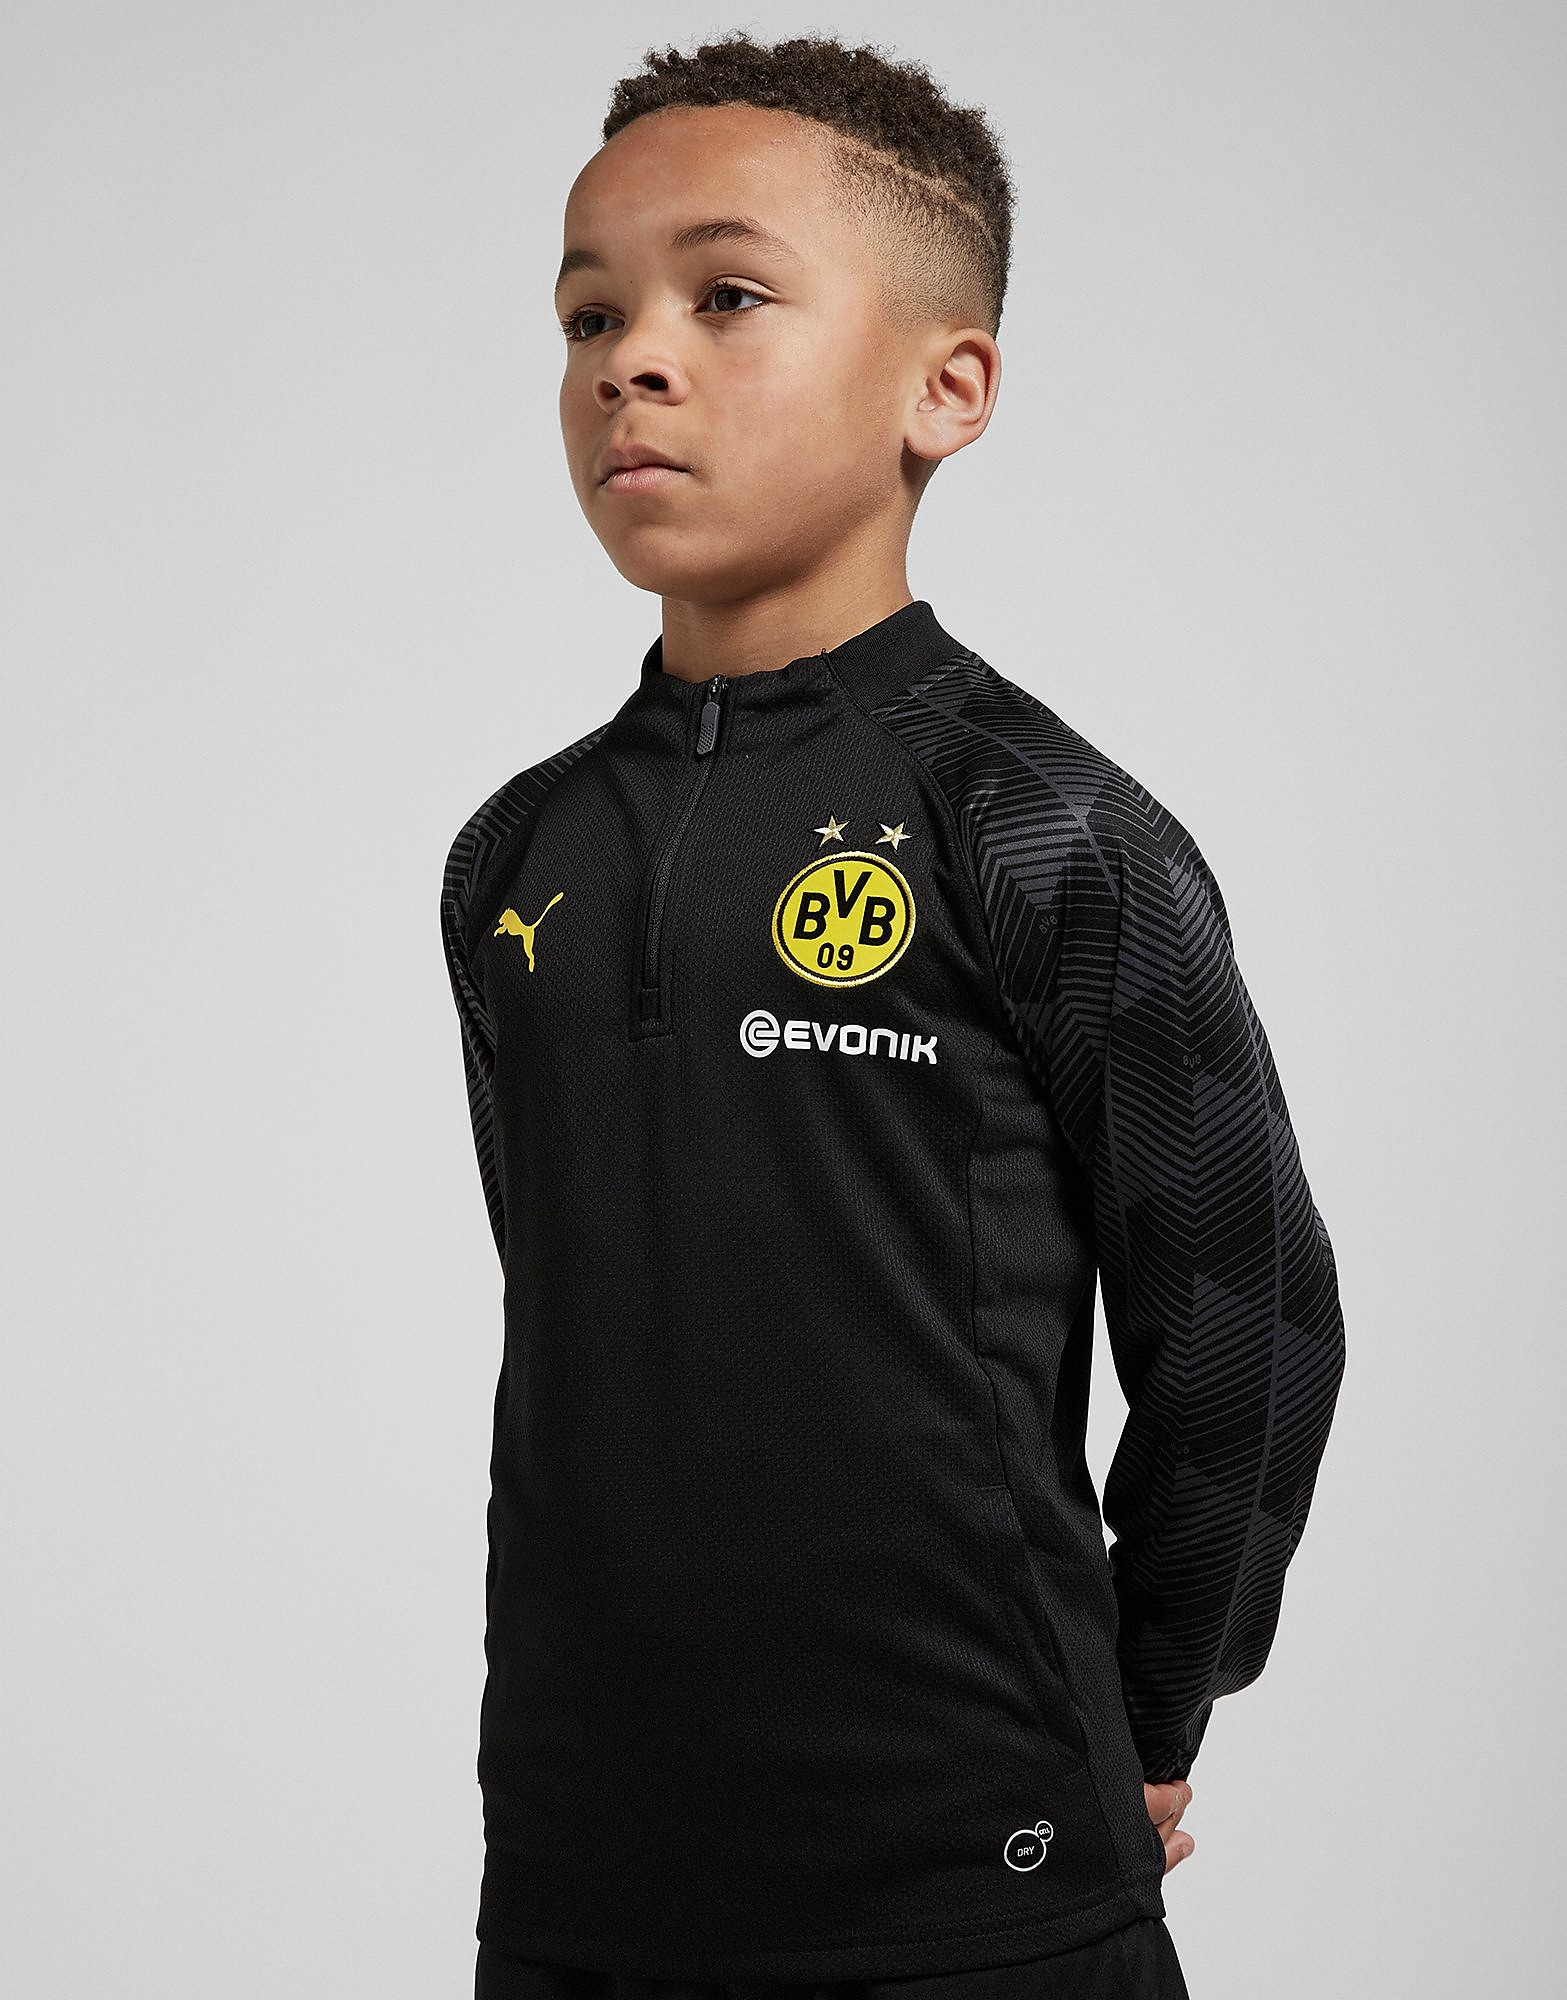 PUMA Borussia Dortmund 2018 1/4 Zip Training Top Junior